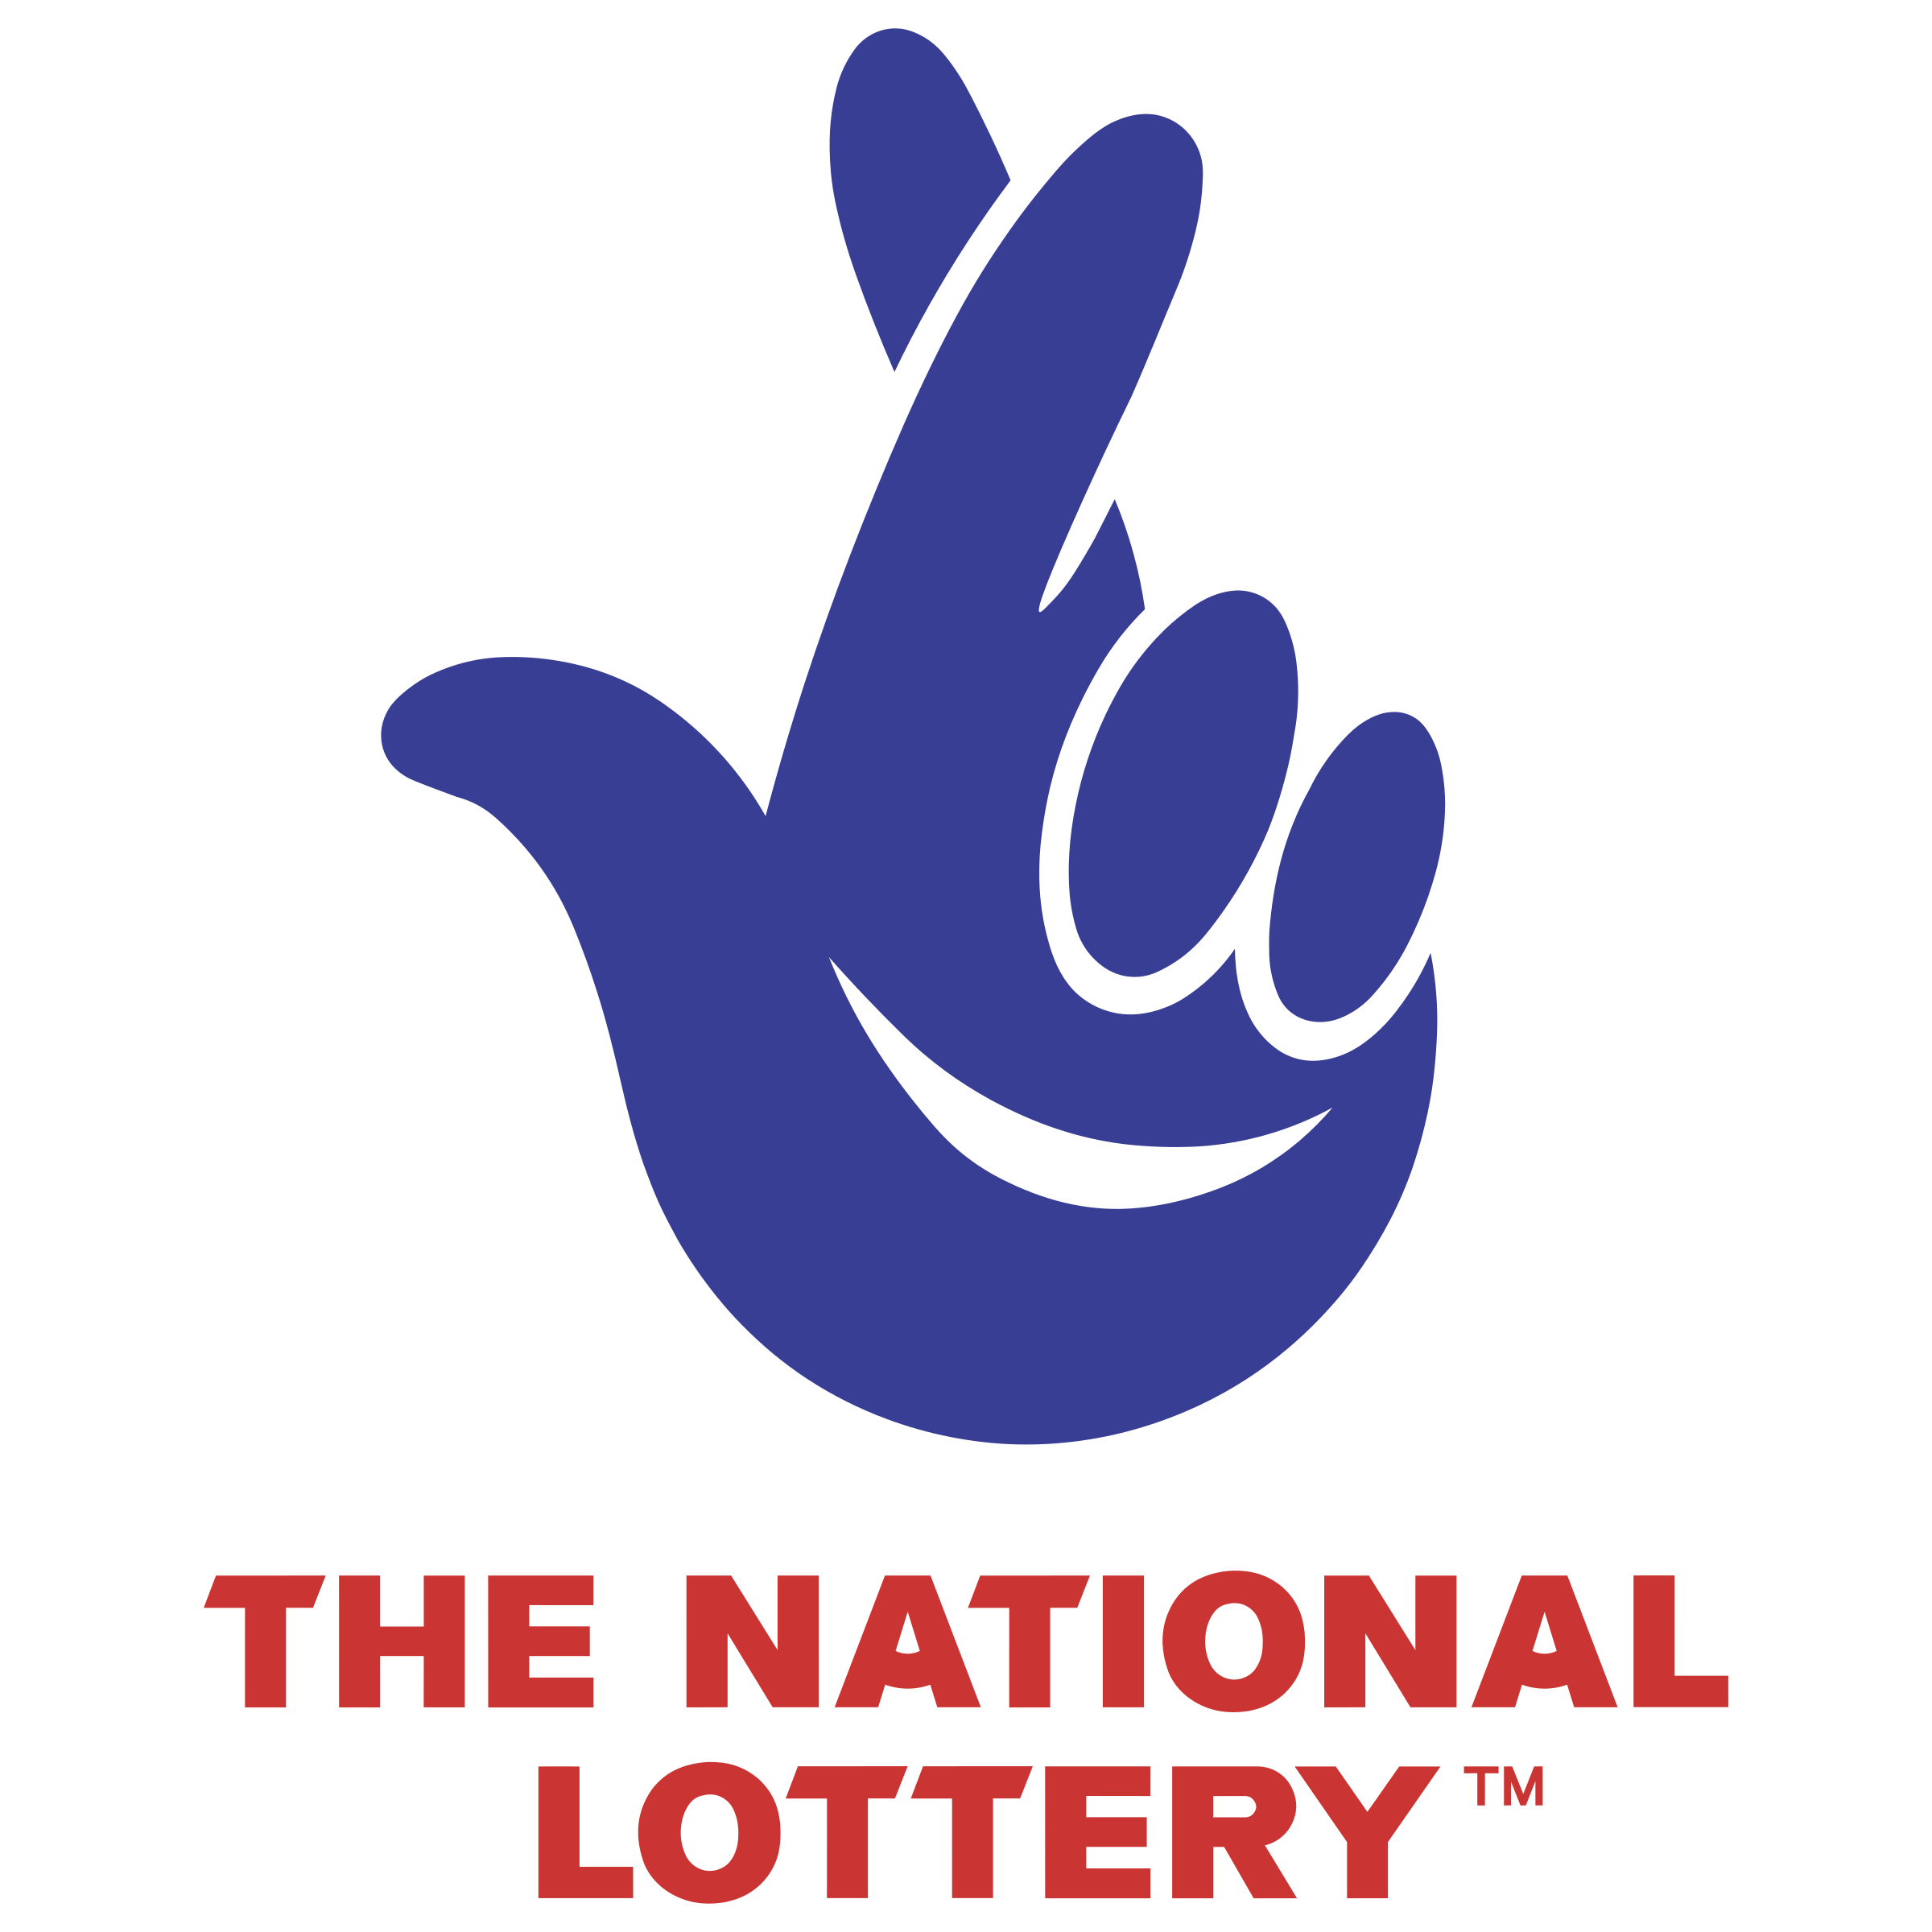 The National Lottery Logo Png Transparent Svg Vector Freebie Supply